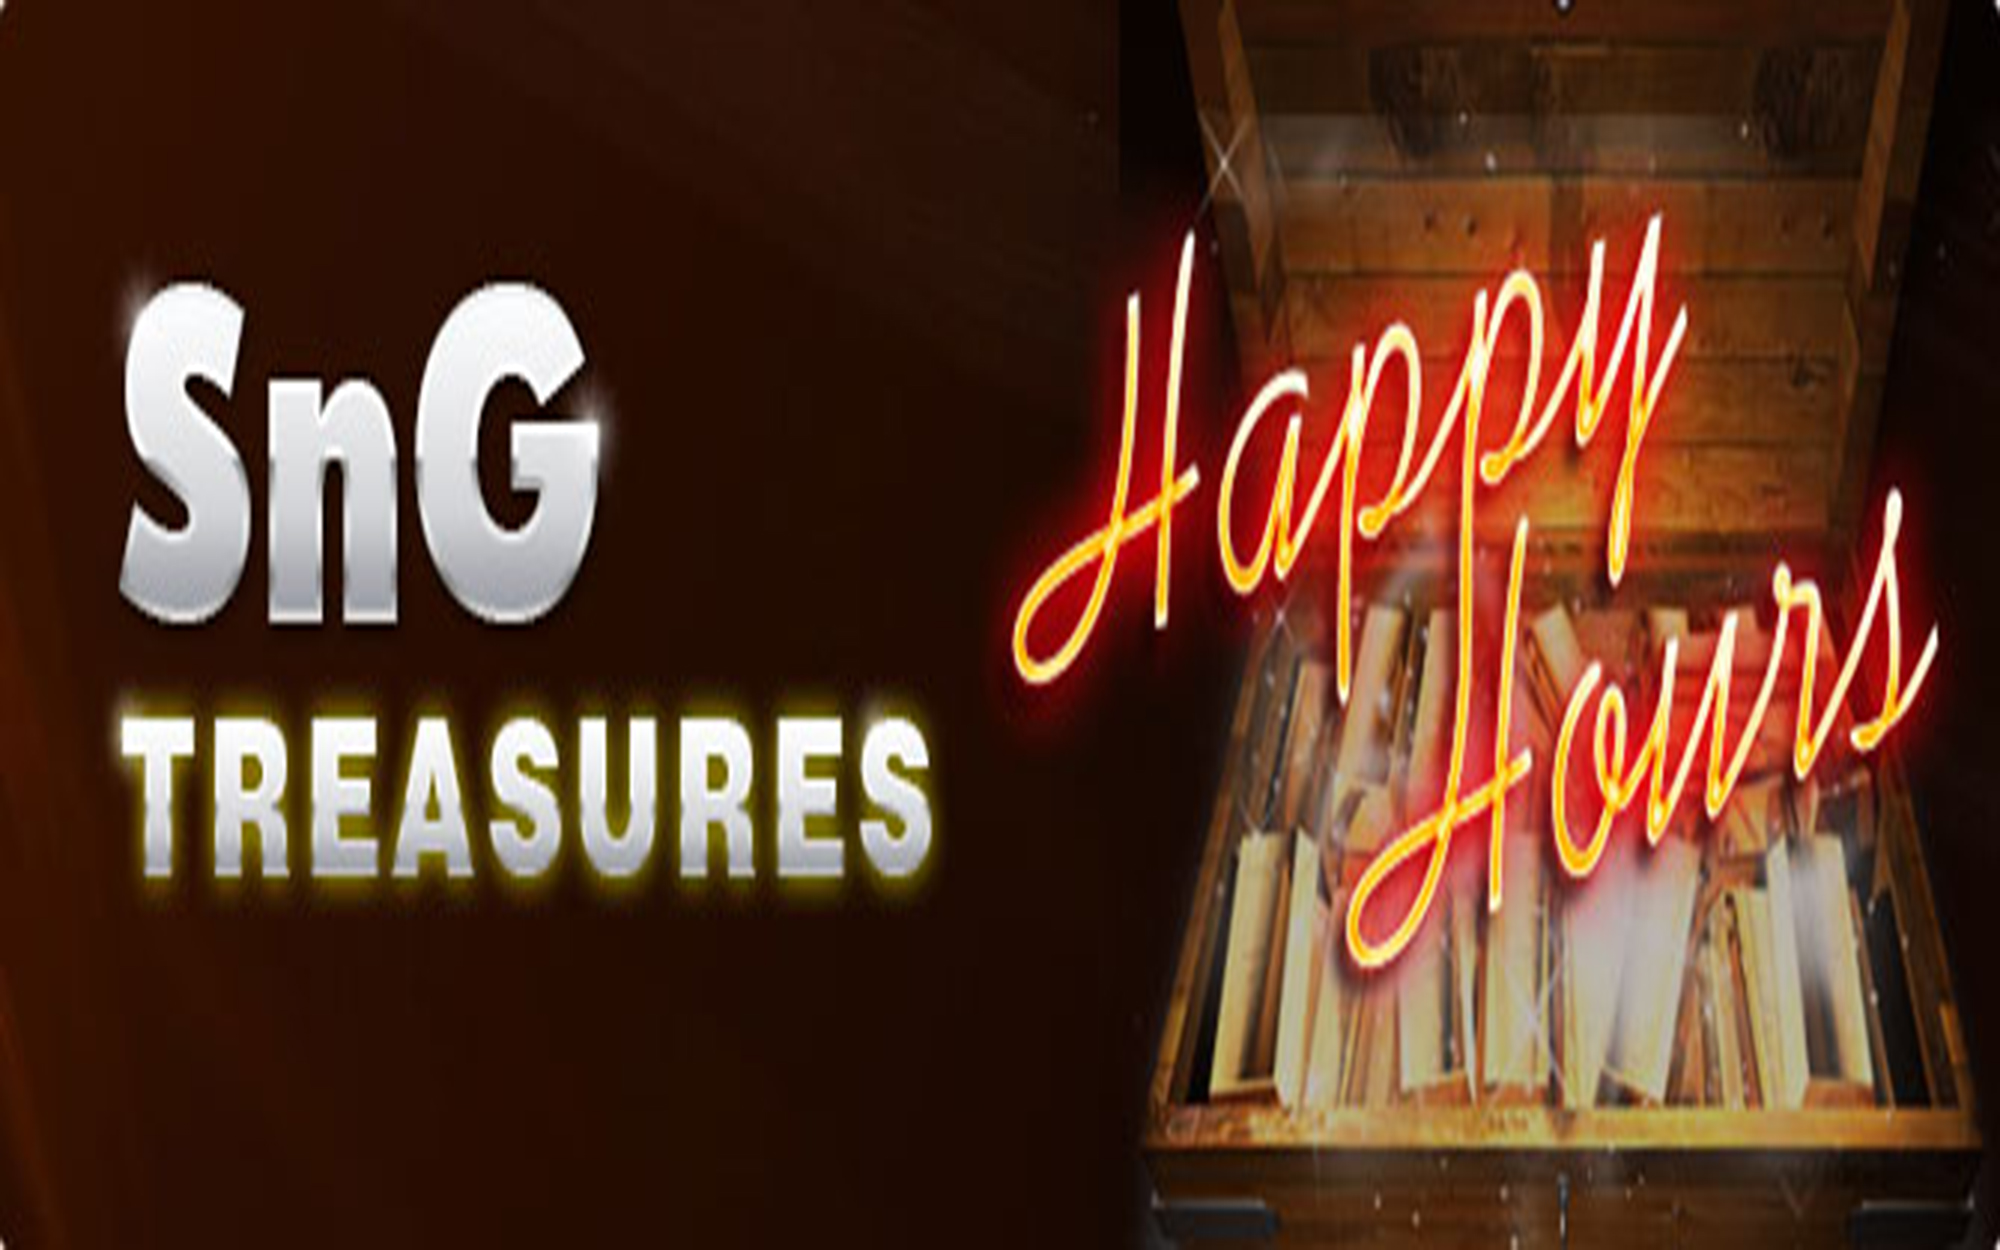 SNG Treasures from Pokerking!